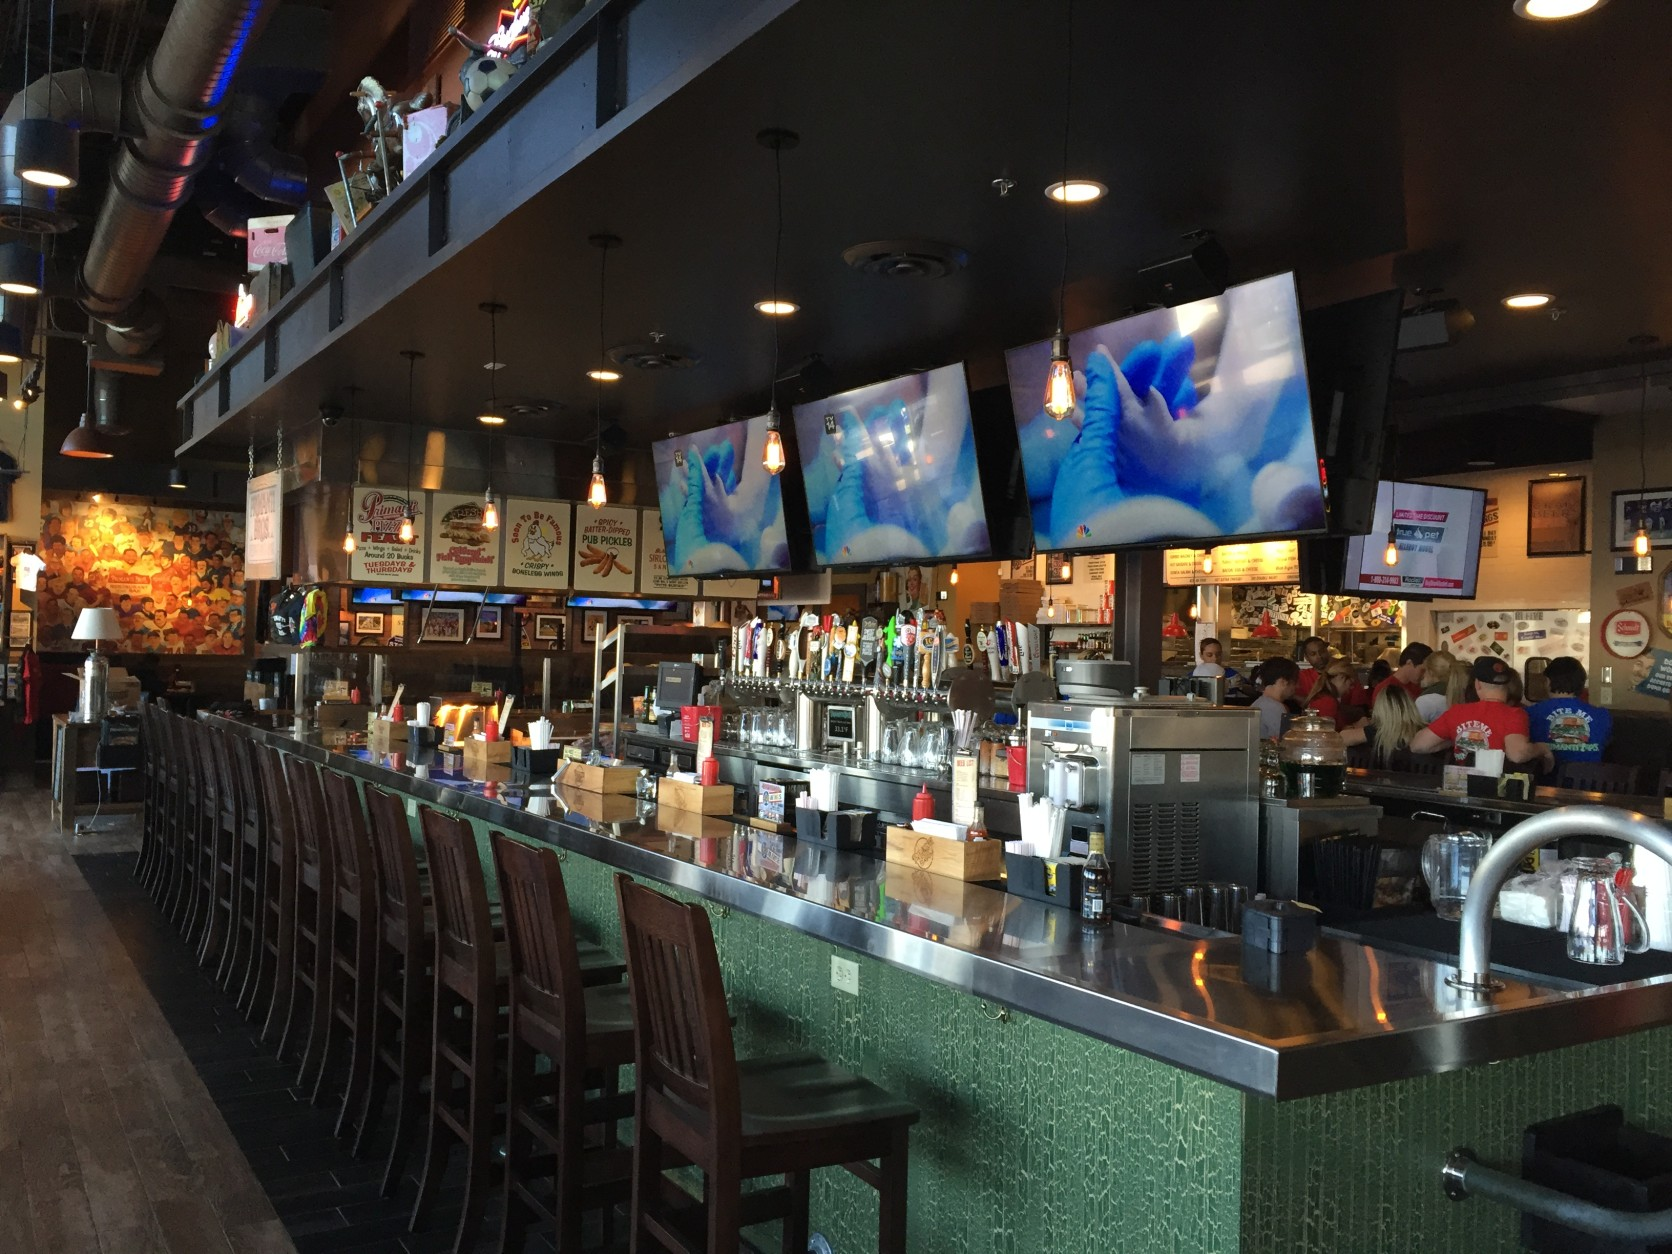 The bar is stocked with plenty of beer on tap with an emphasis on craft brews. There's also a flat top grill at one end of the bar where you can watch your food order being filled. (WTOP/Michelle Basch)